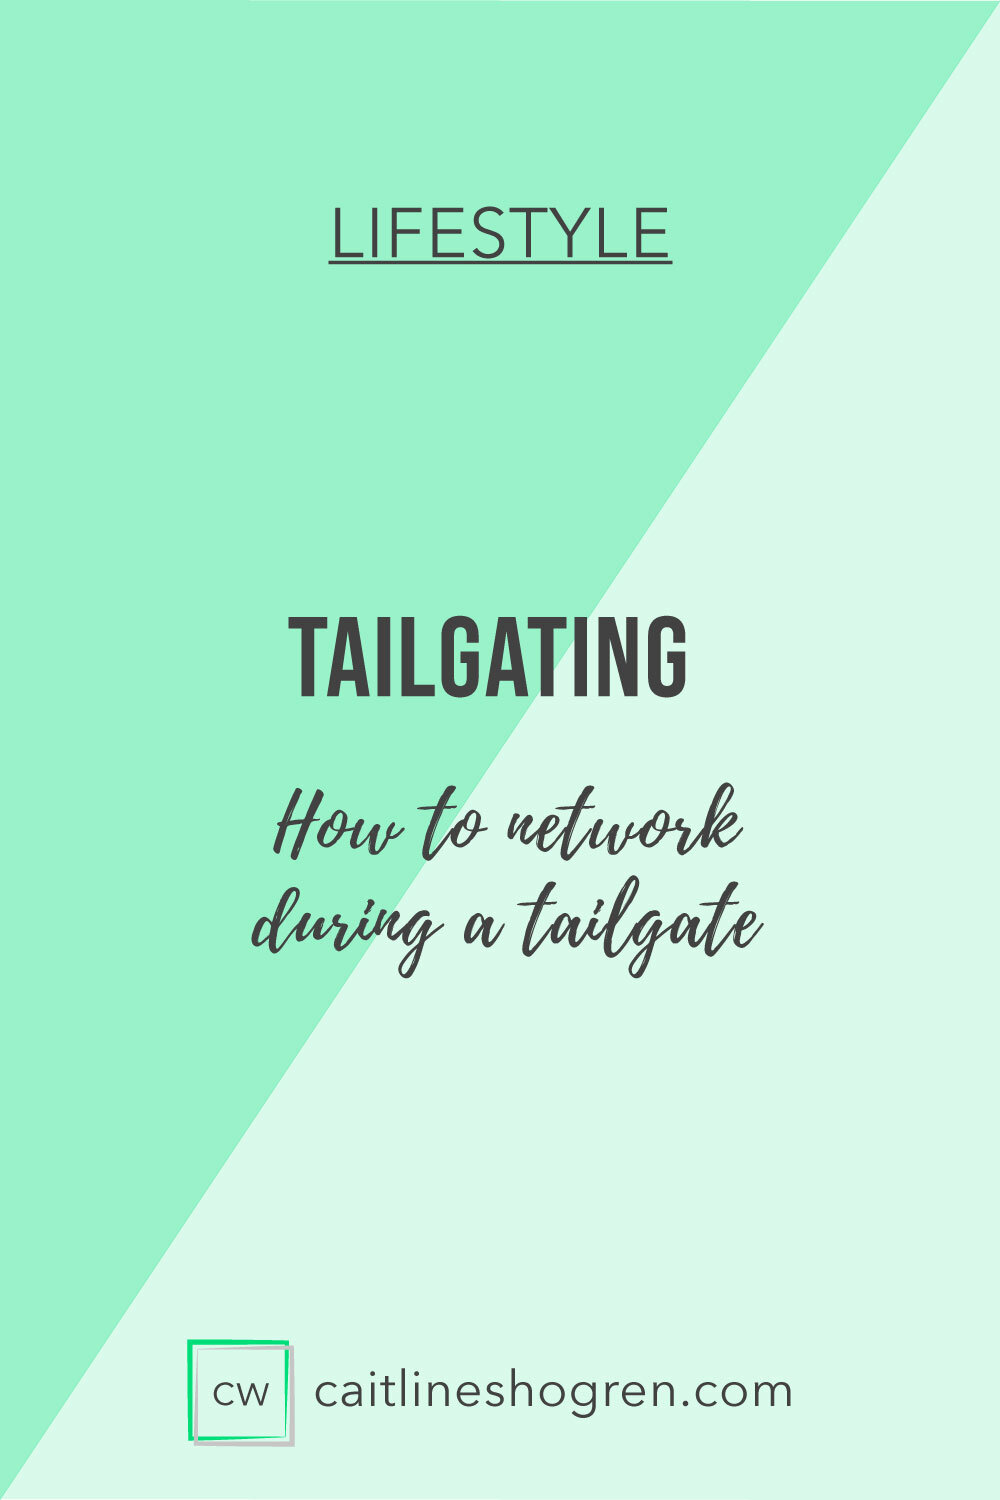 how-to-network-tailgating2.jpg